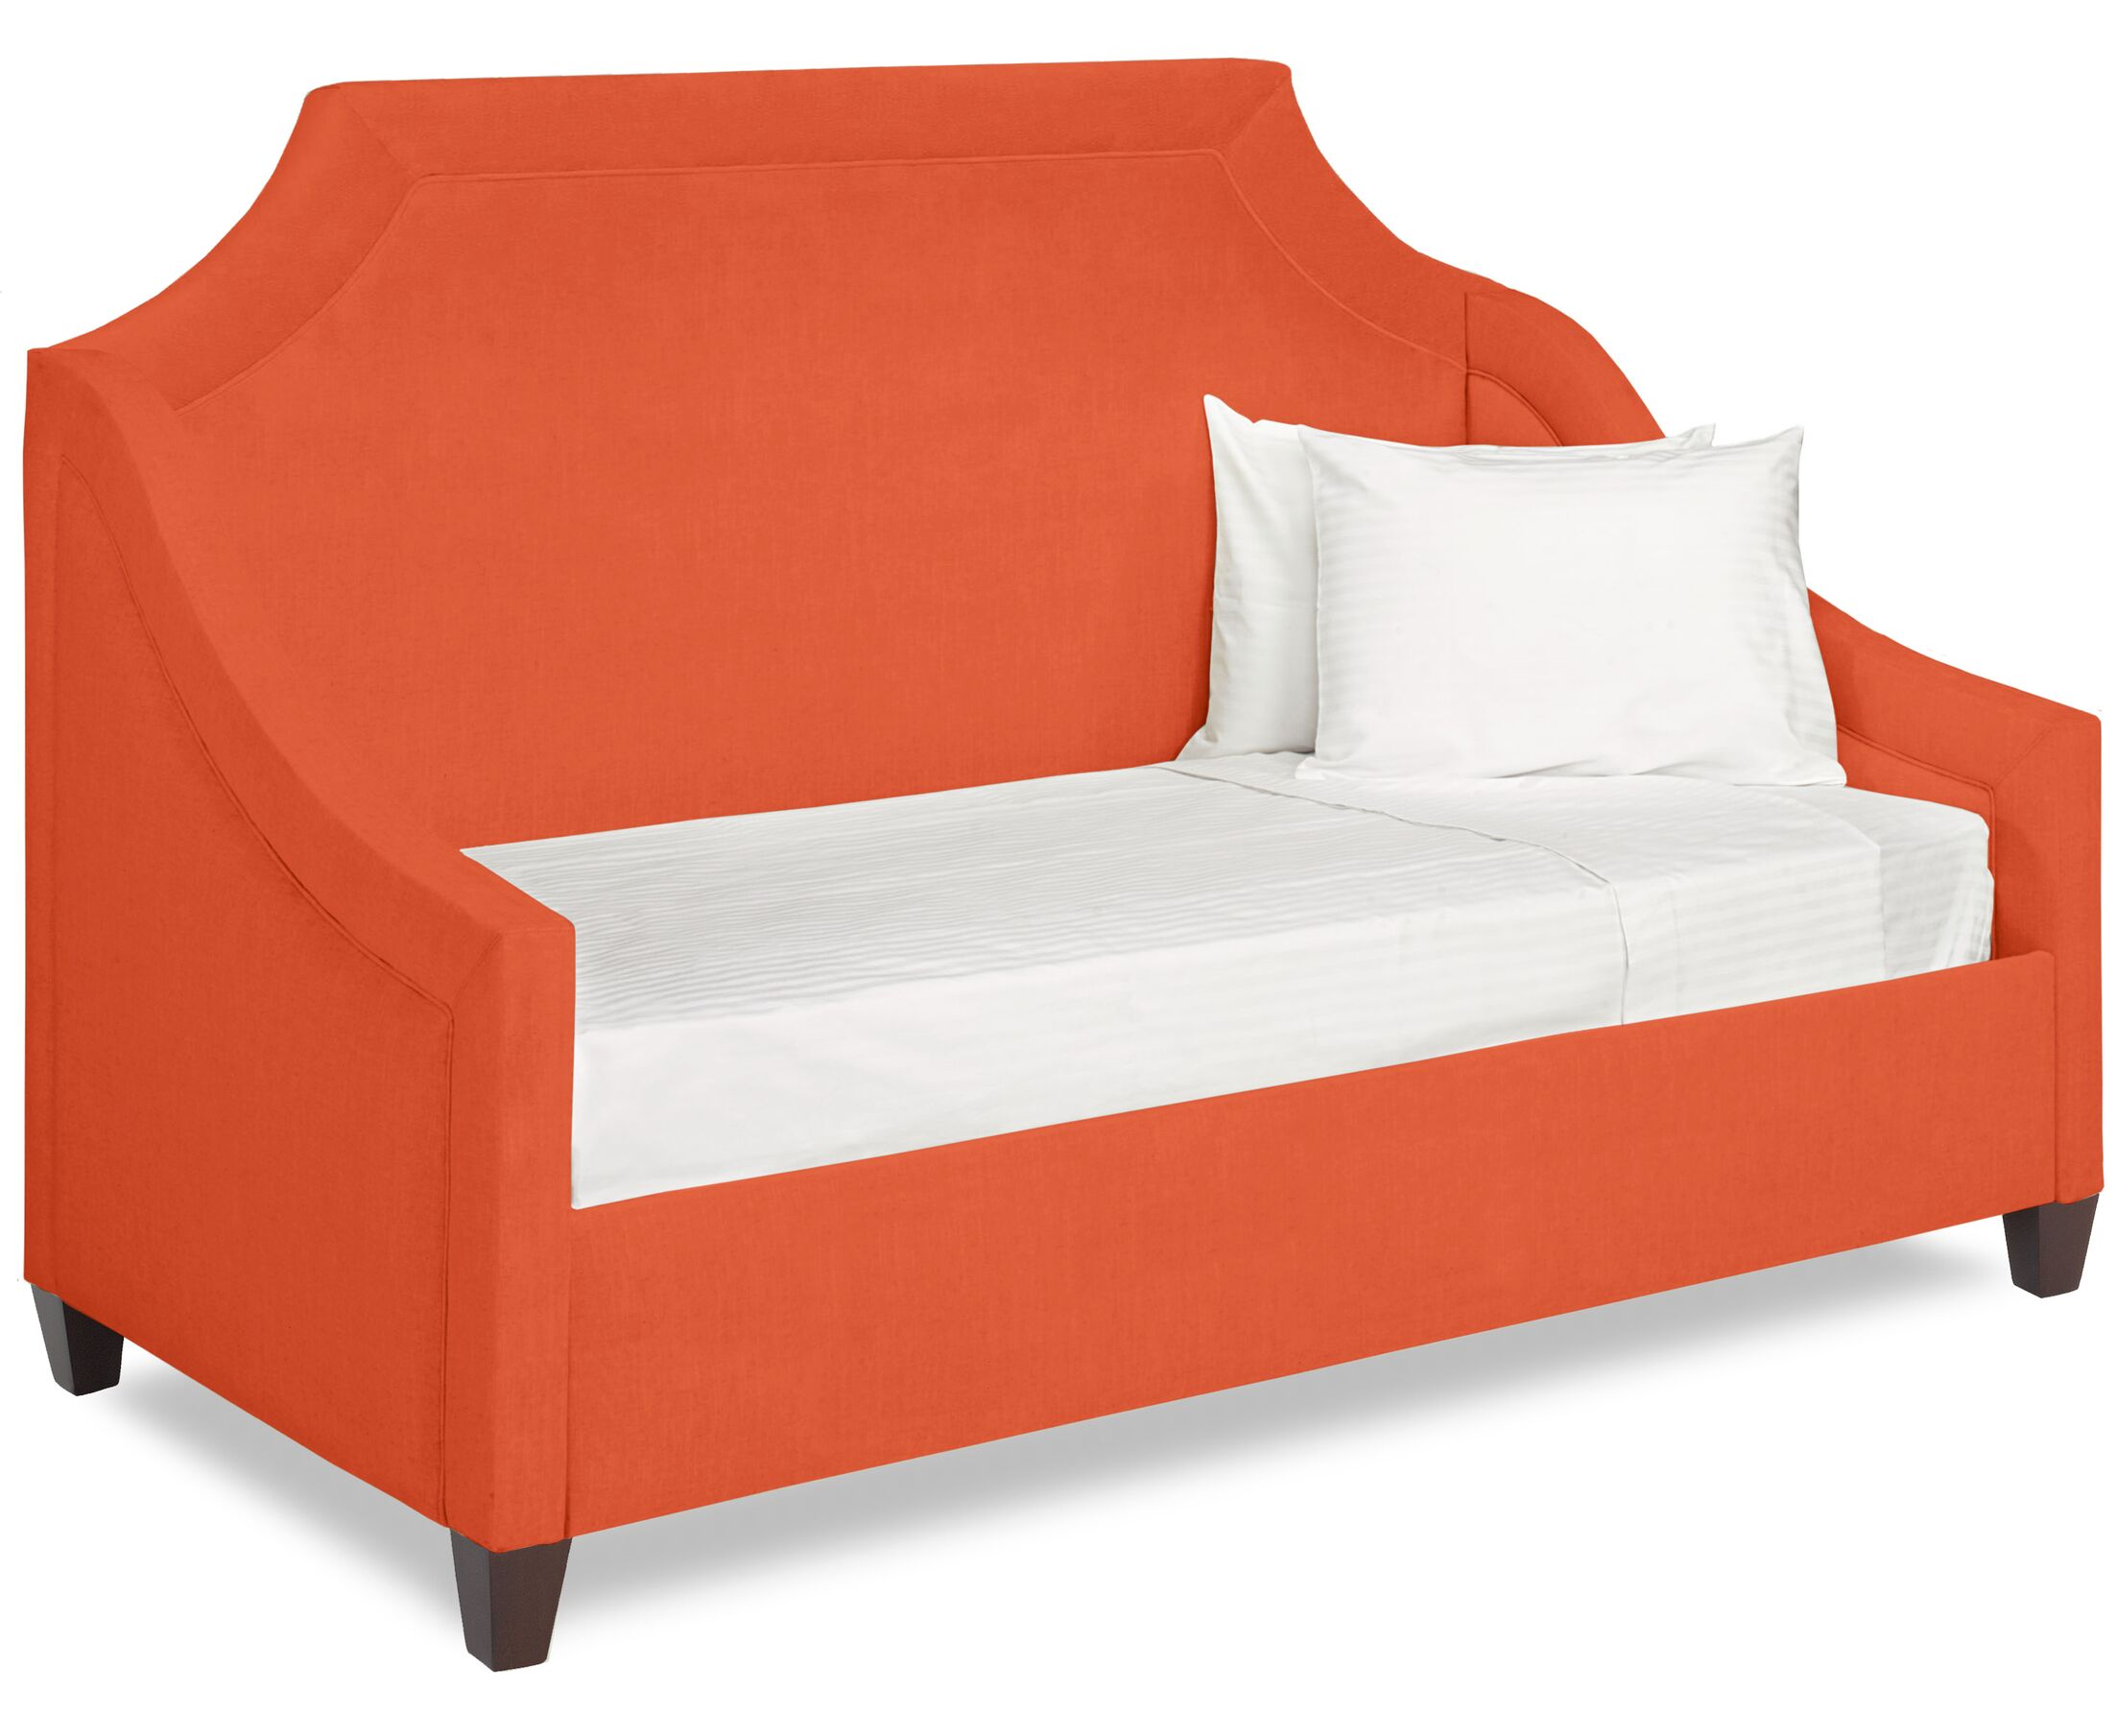 Dreamtime Daybed with Mattress Color: Tangelo, Size: Twin XL